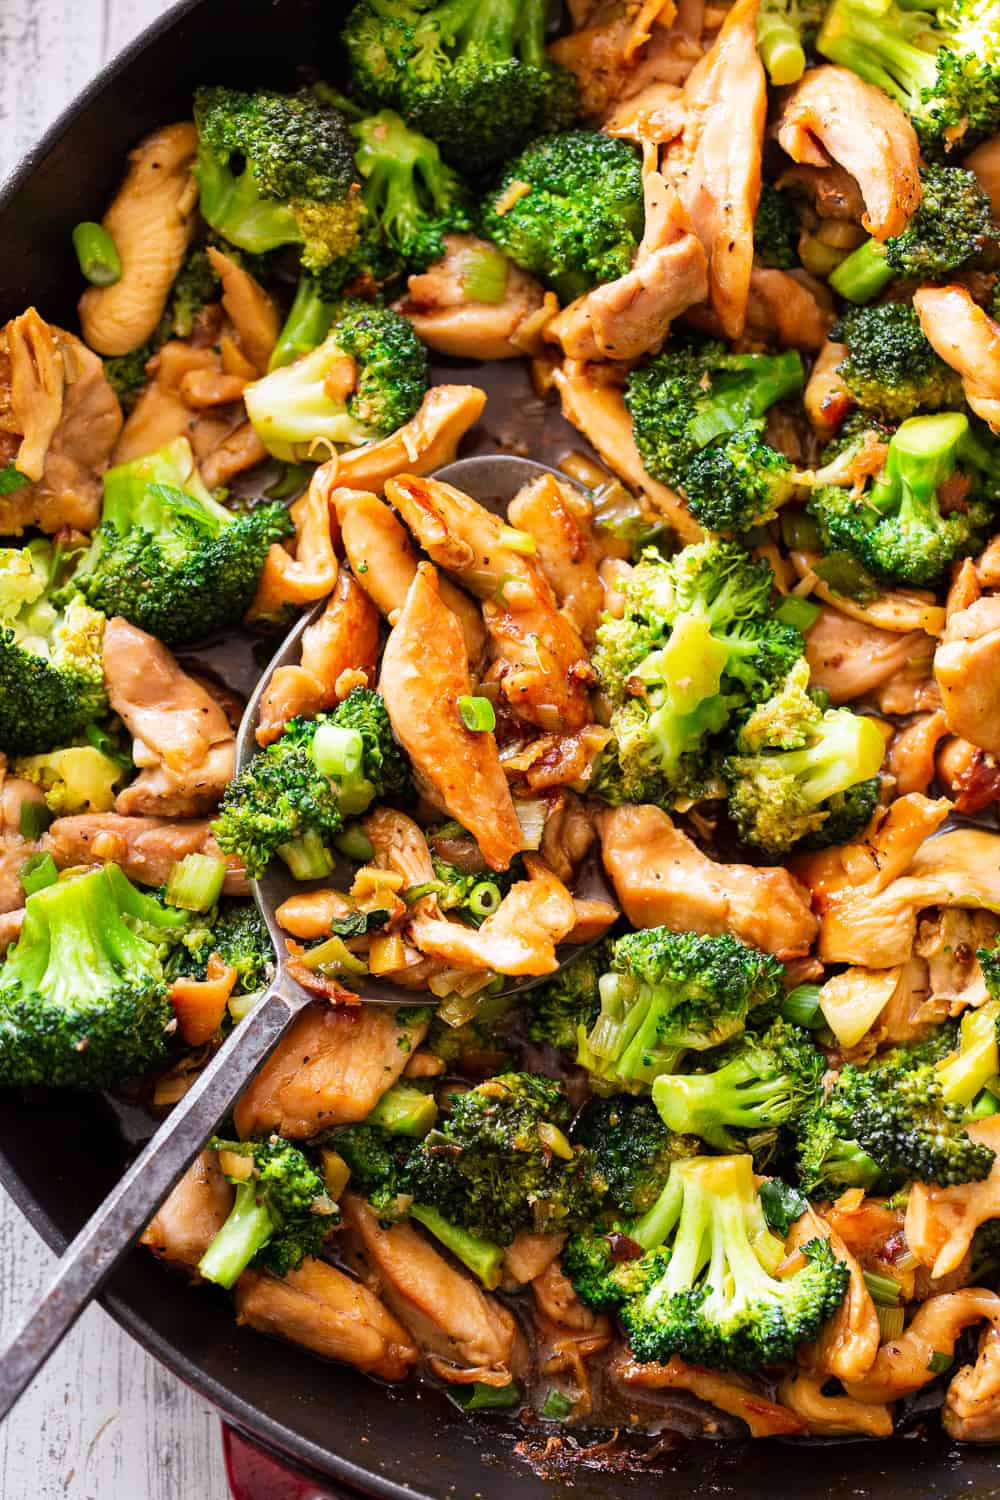 This quick and tasty paleo chicken and broccoli stir fry uses clean simple ingredients and is so much healthier than takeout but just as fast! It's family approved and great for weeknight dinners. I love serving it over fried cauliflower rice to keep it paleo, Whole30 compliant and low carb too. #paleo #whole30 #cleaneating #keto